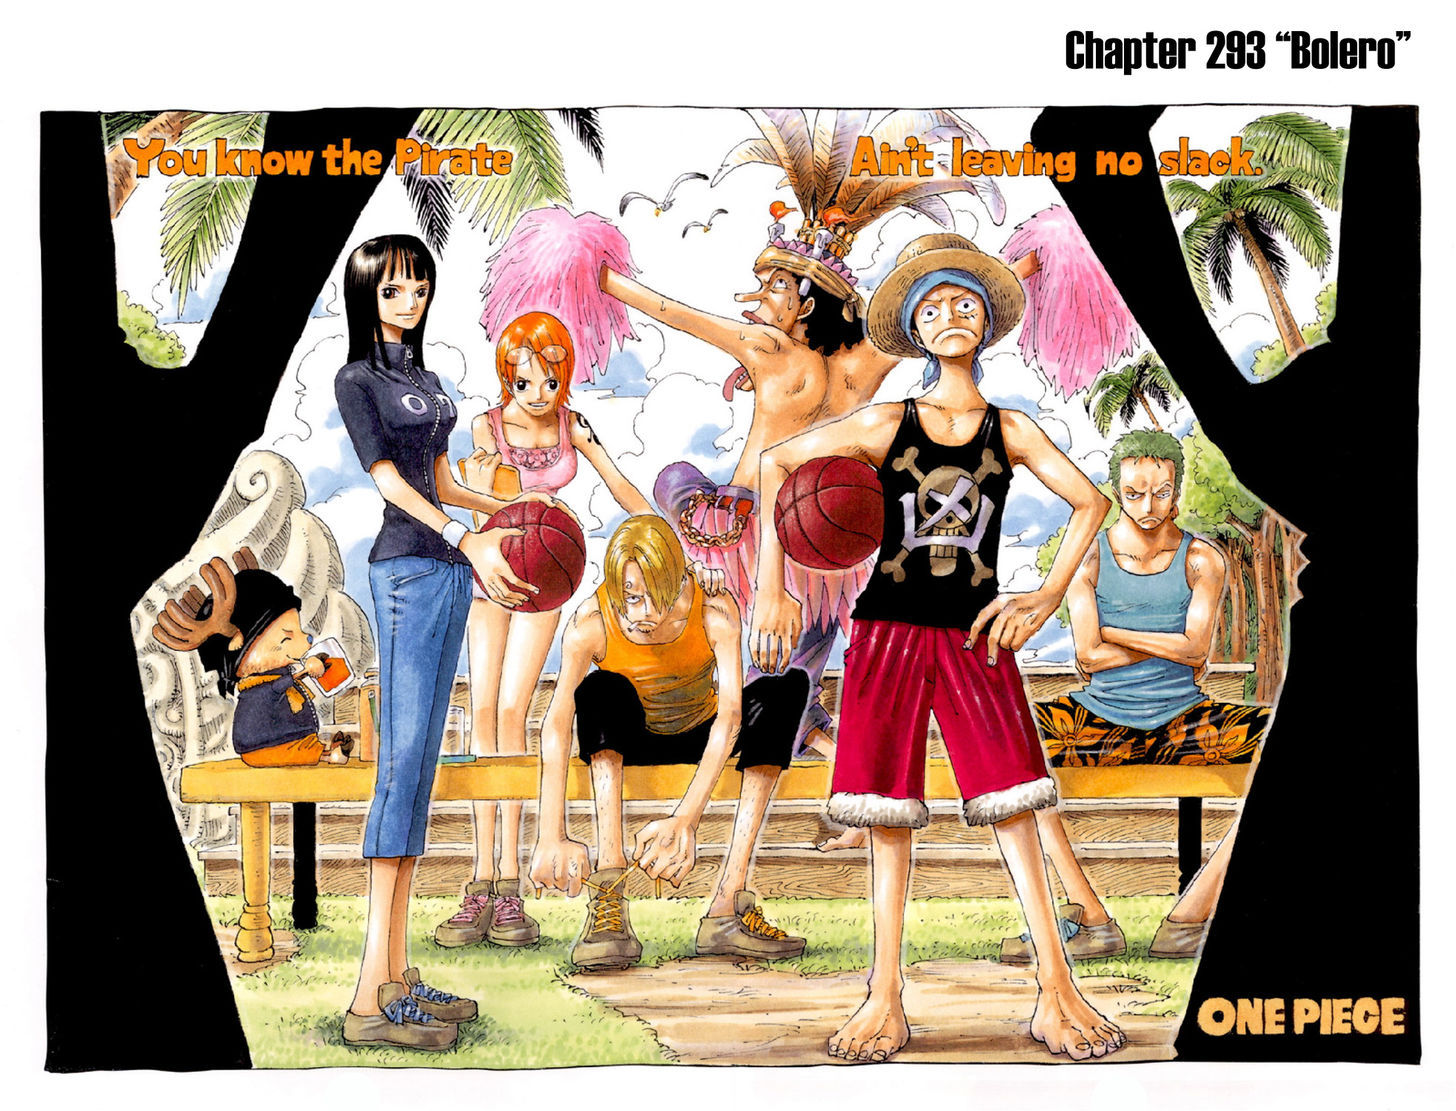 https://im.nineanime.com/comics/pic9/32/96/2641/OnePiece2930872.jpg Page 1